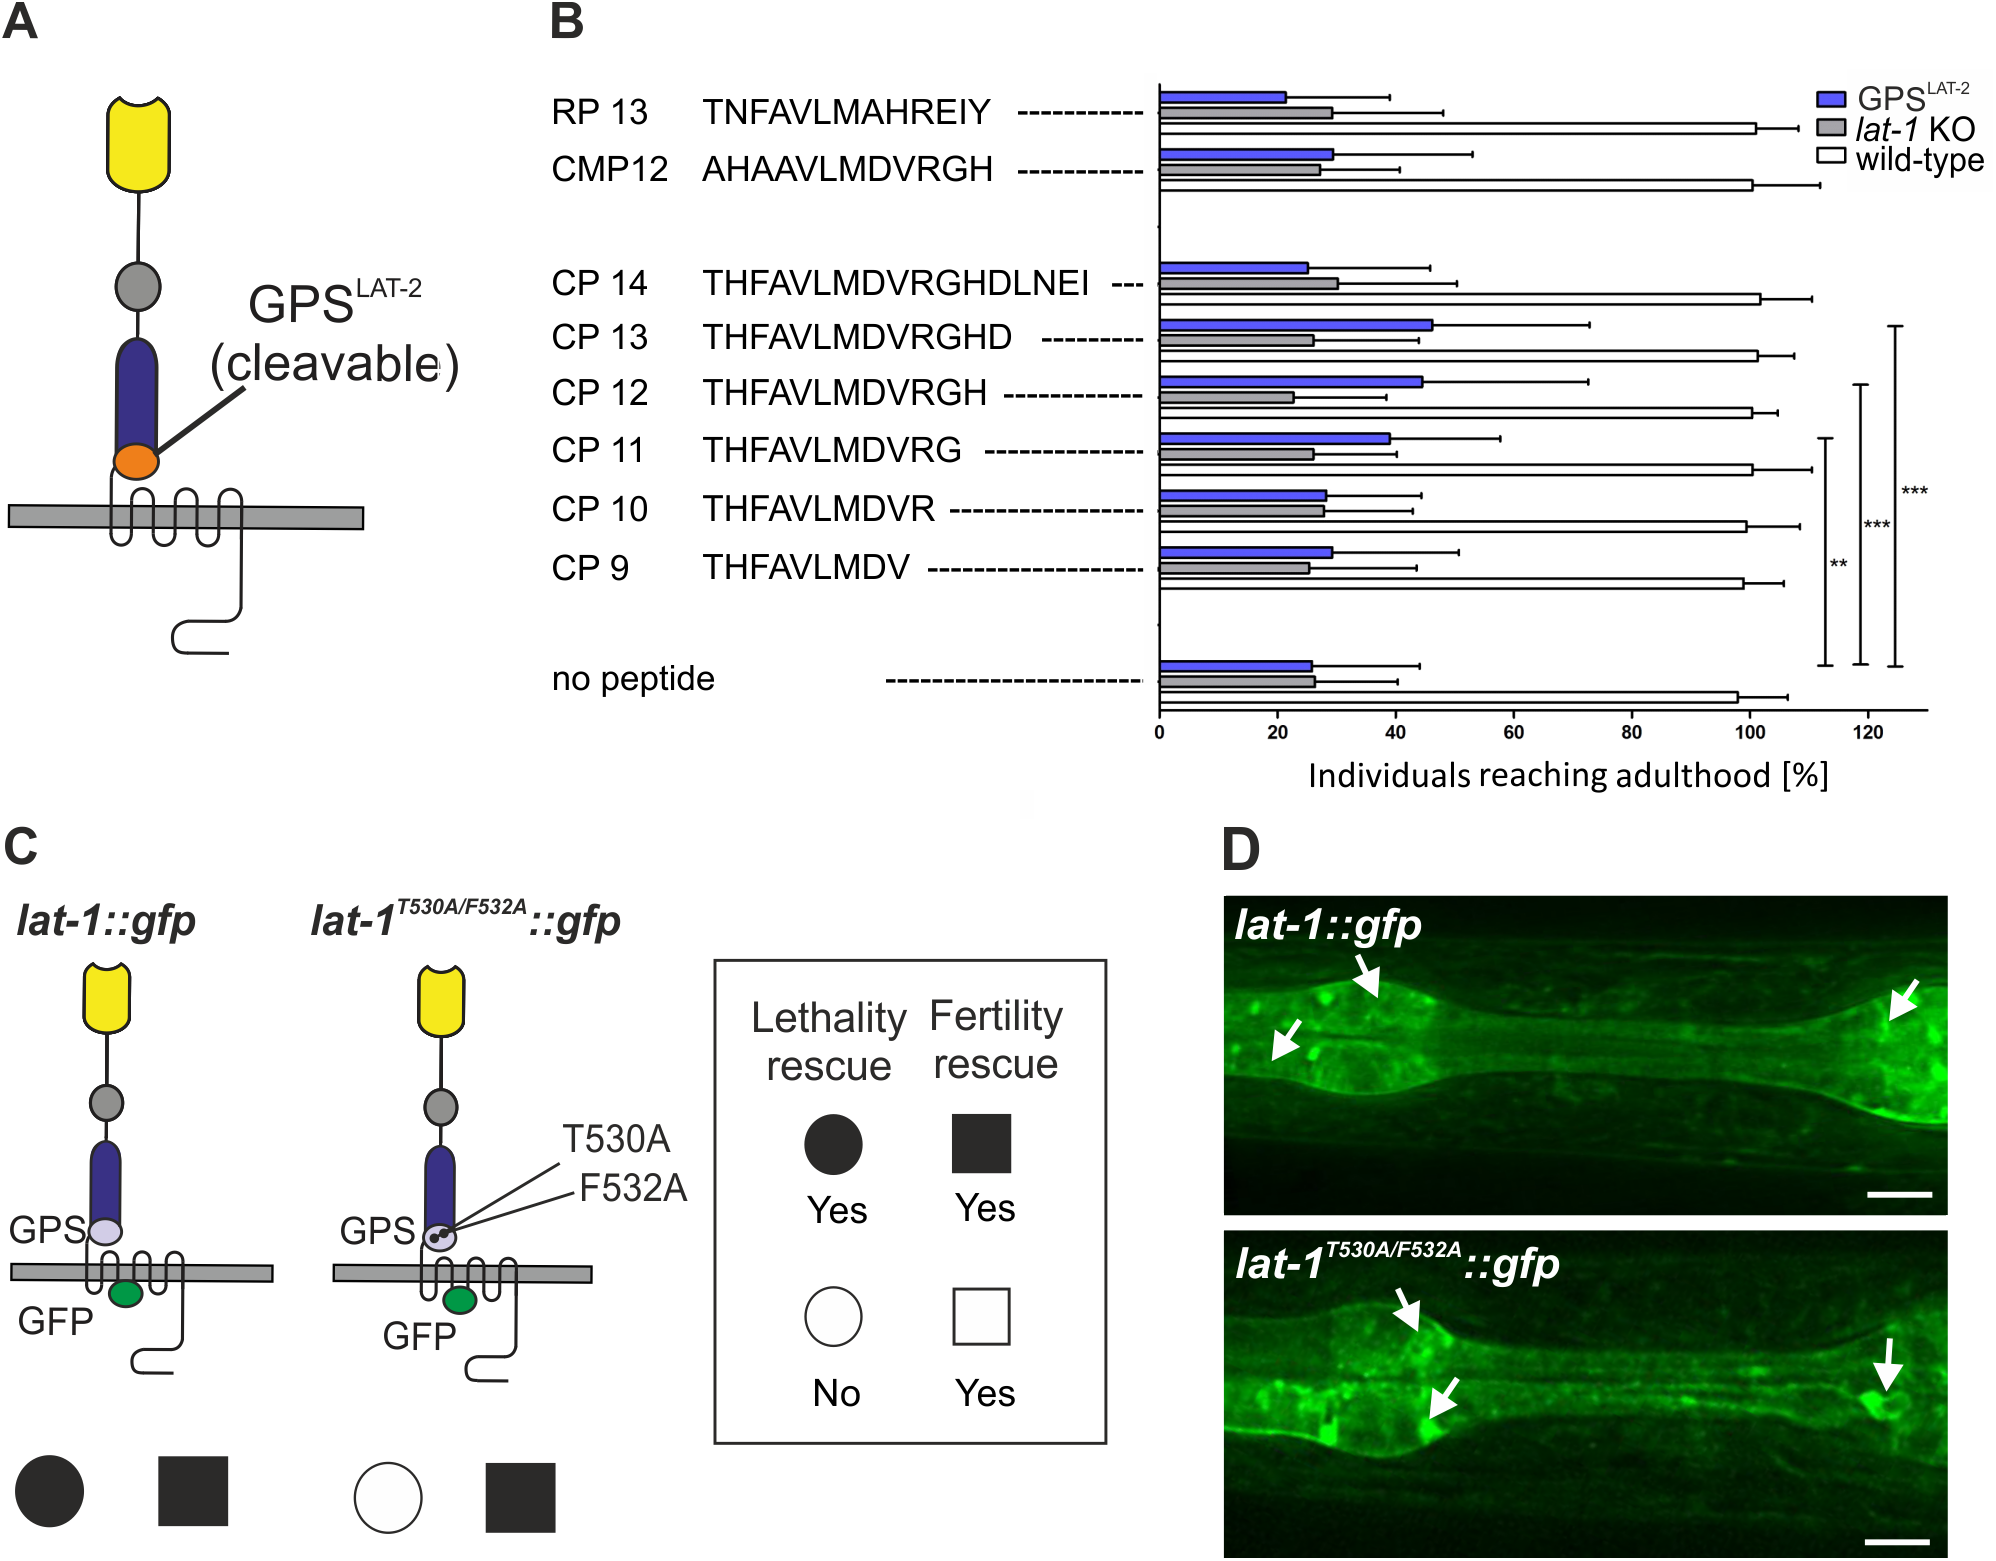 The agonistic sequence of LAT-1 triggers receptor function <i>in vivo</i>.